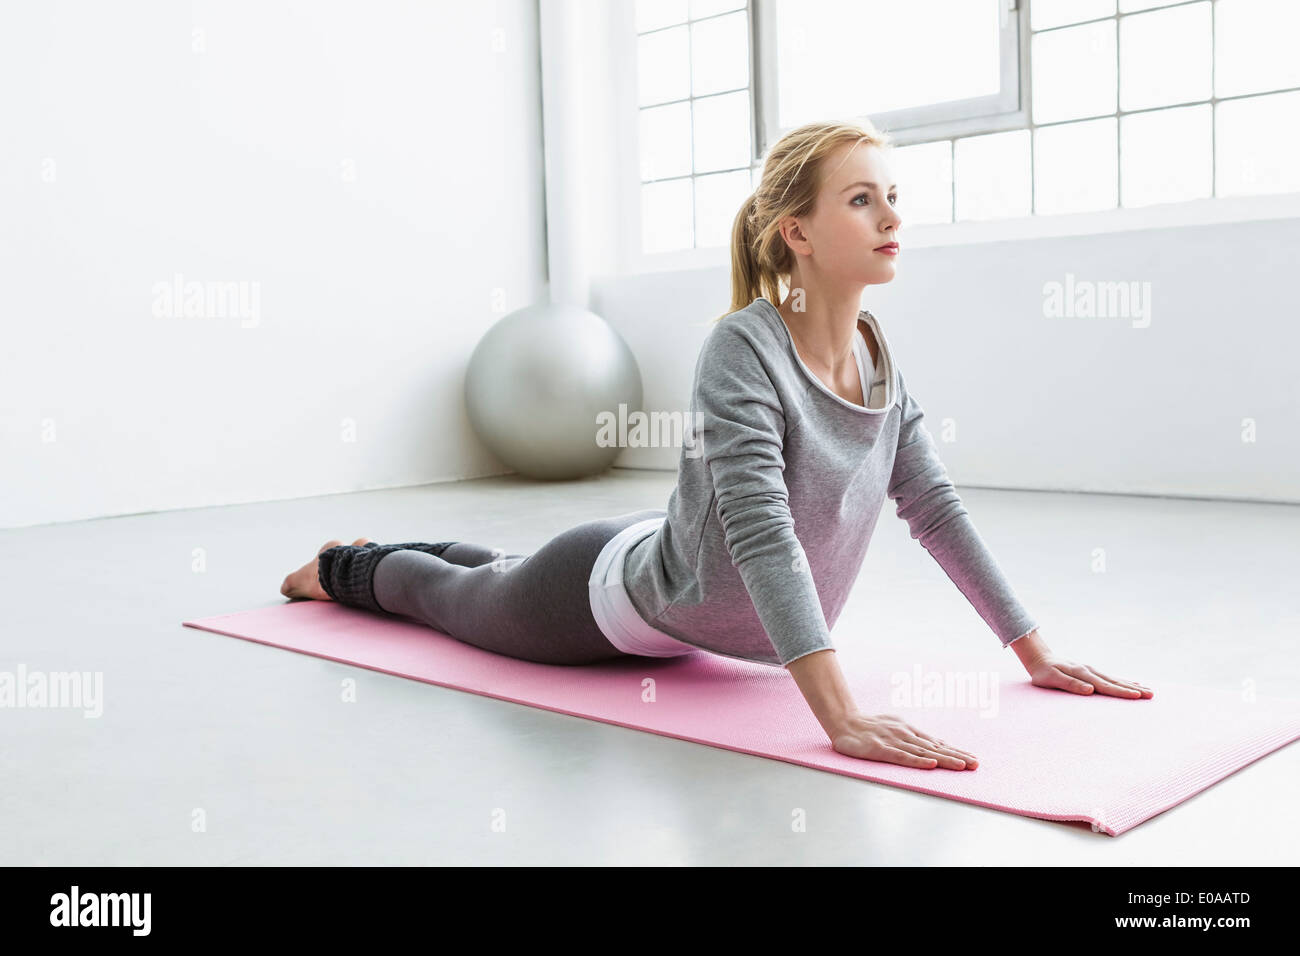 Young woman in yoga pose on yoga mat - Stock Image